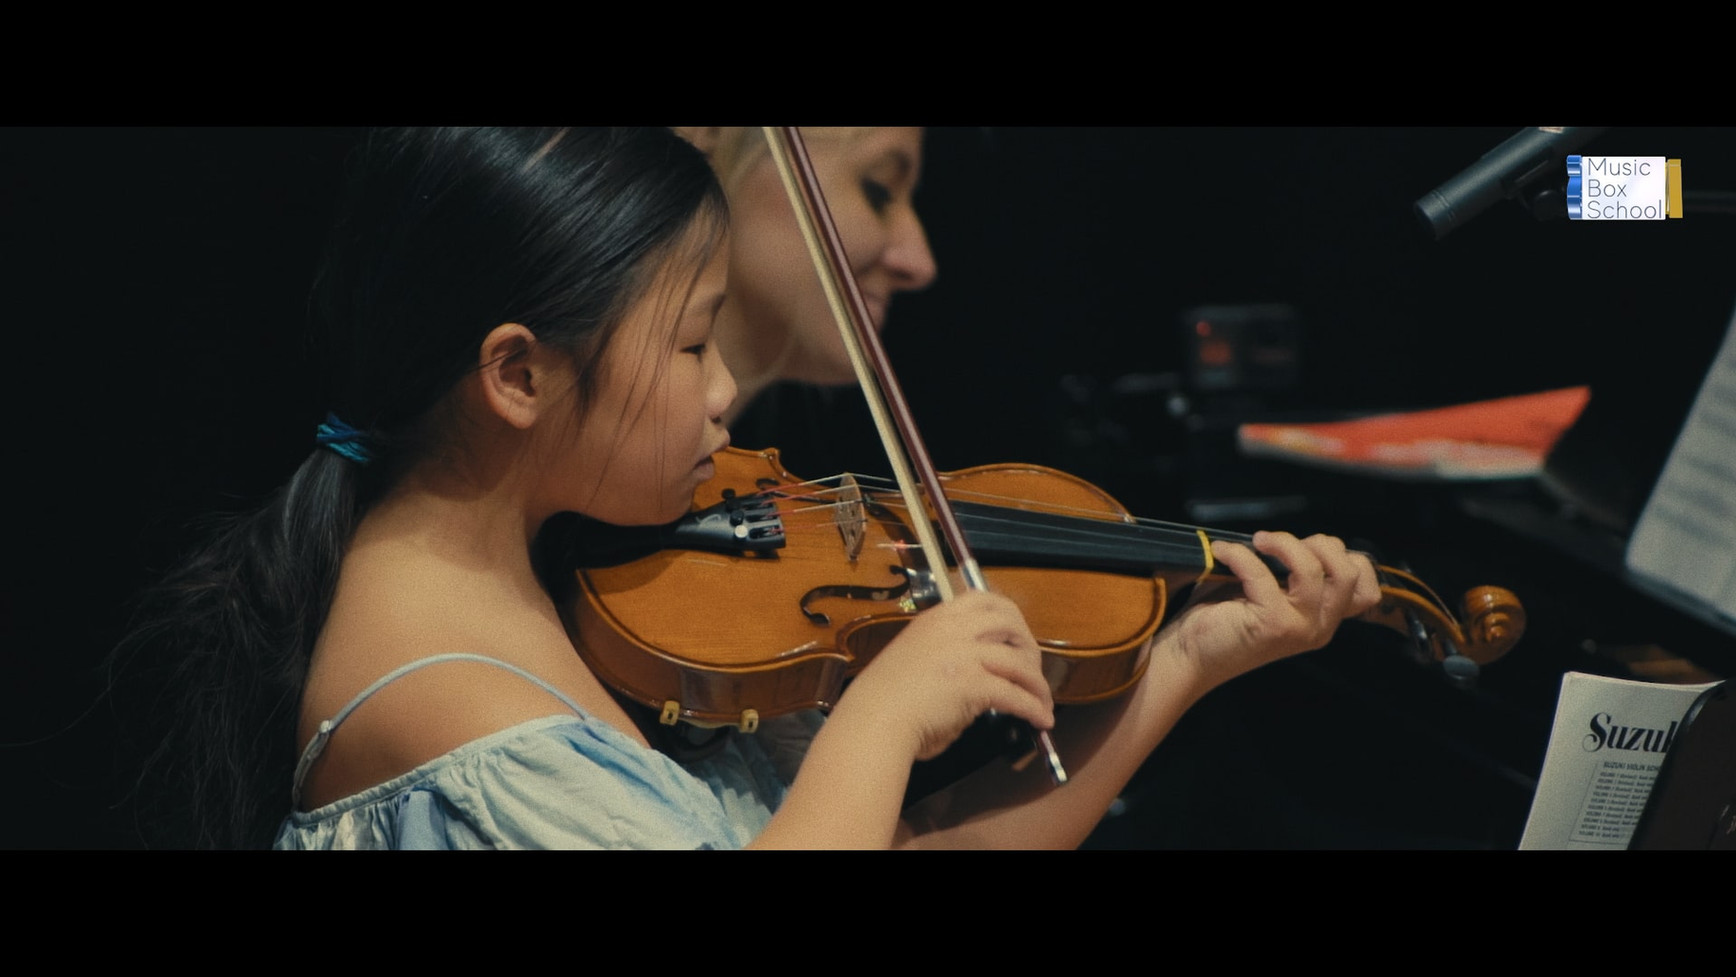 Violin teachers in Sheepshead Bay, Brooklyn